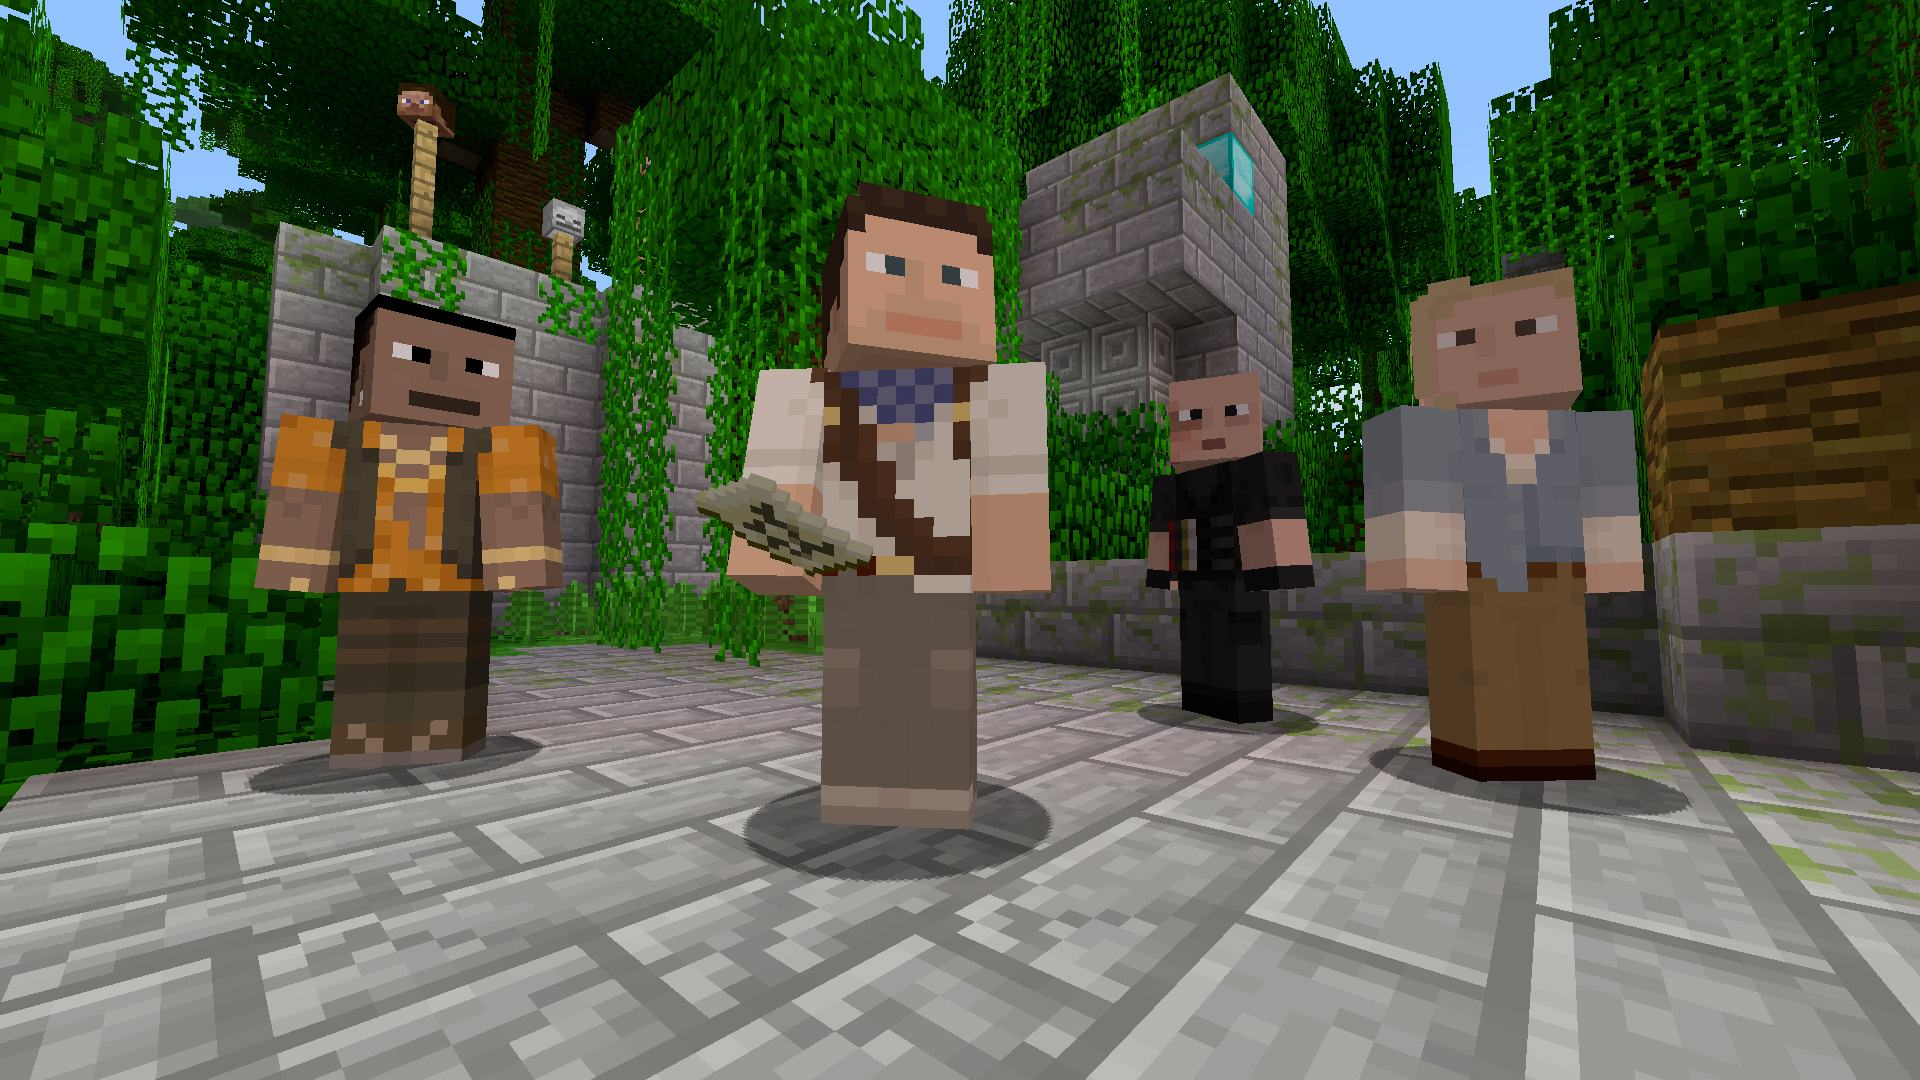 Minecraft Skin Pack On PS Official PlayStationStore US - Skins fur minecraft 1 8